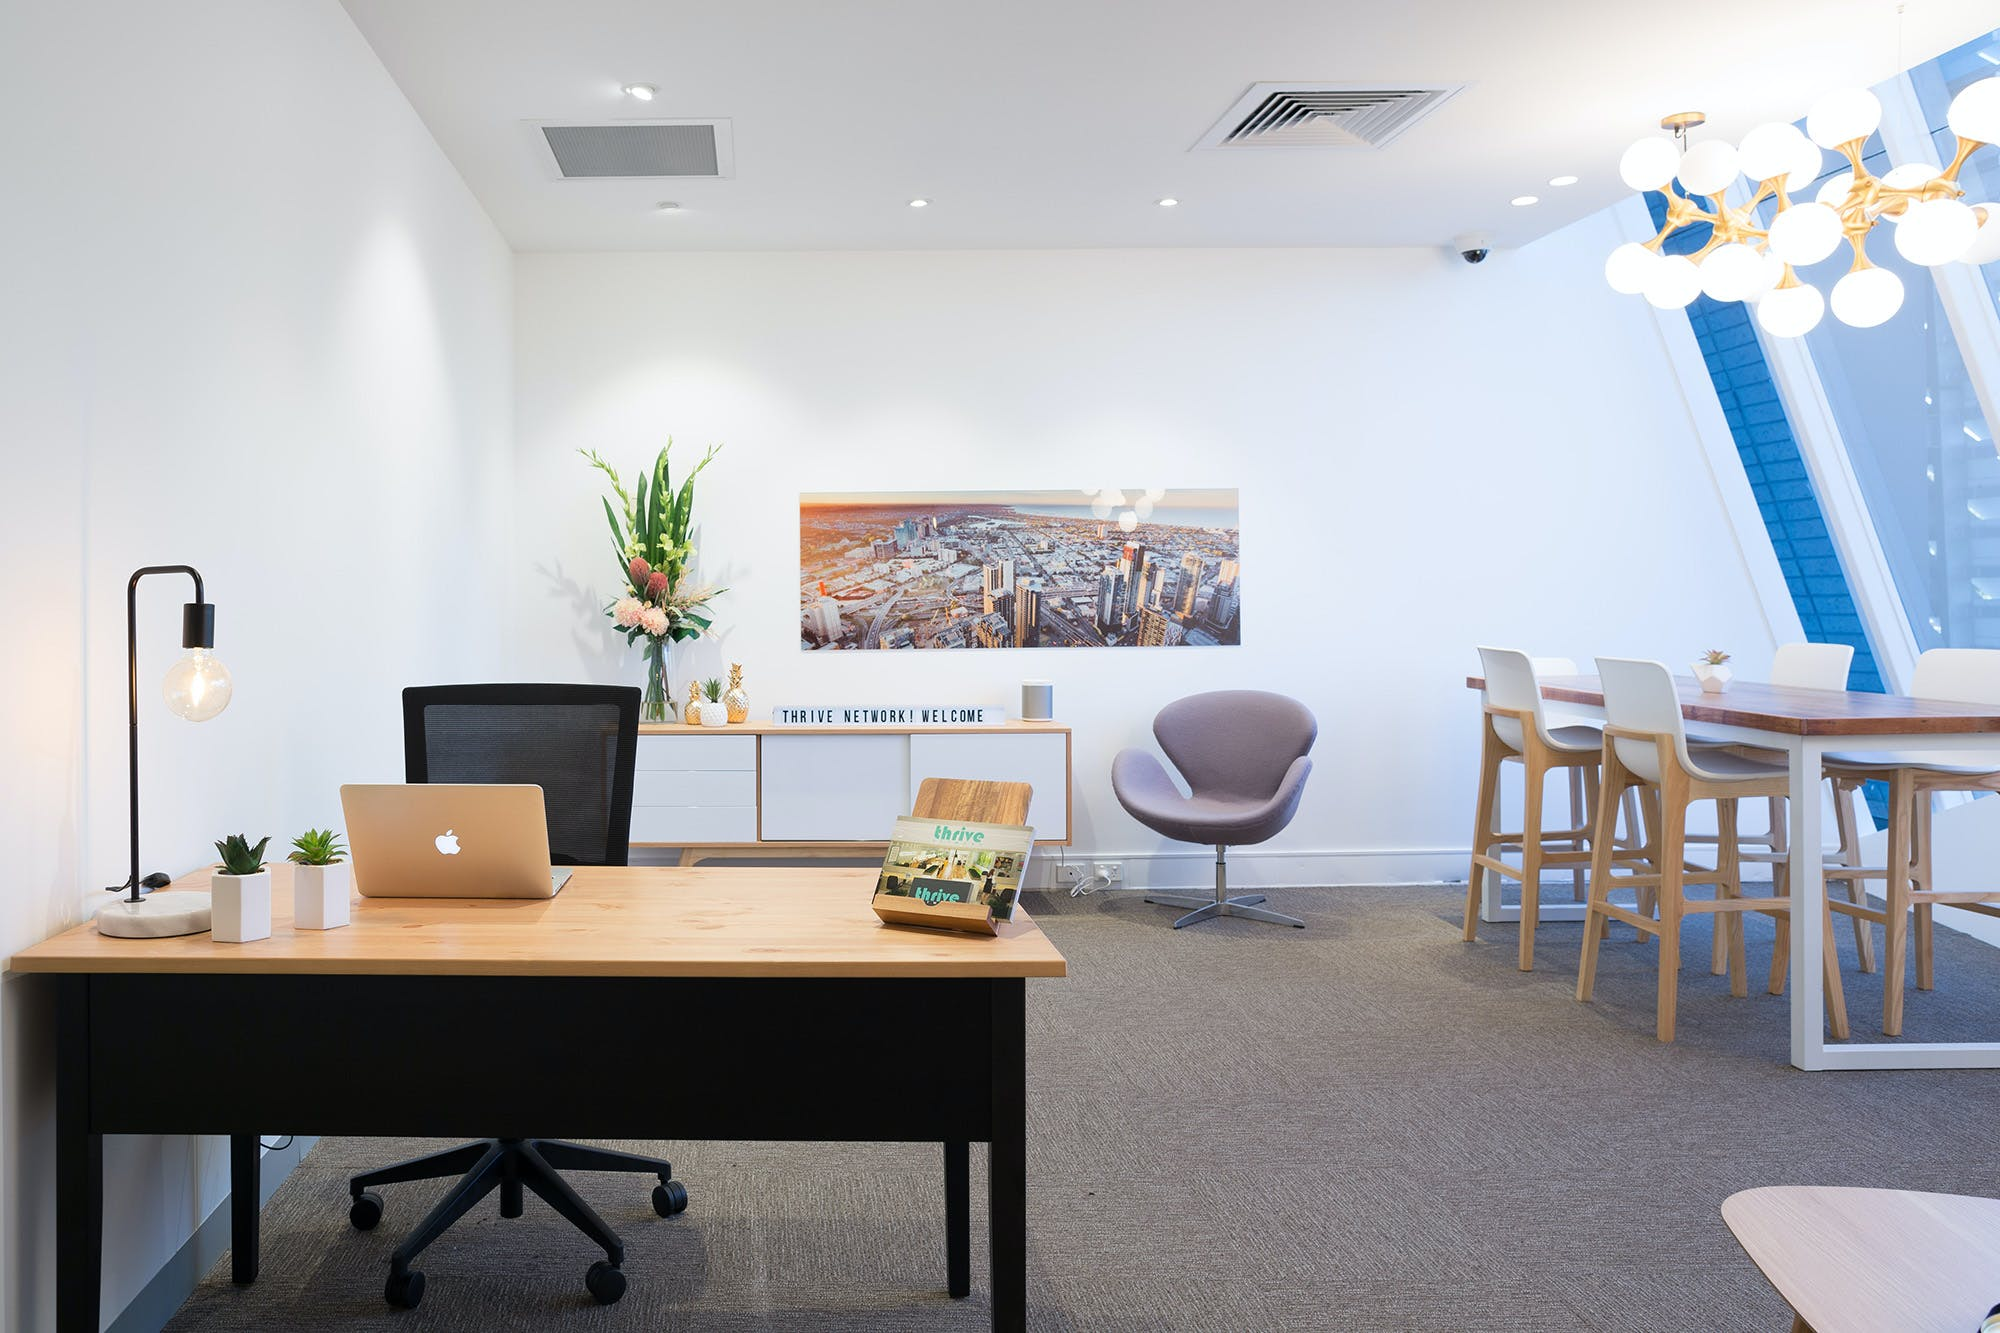 Private office at The Thrive Network, image 6